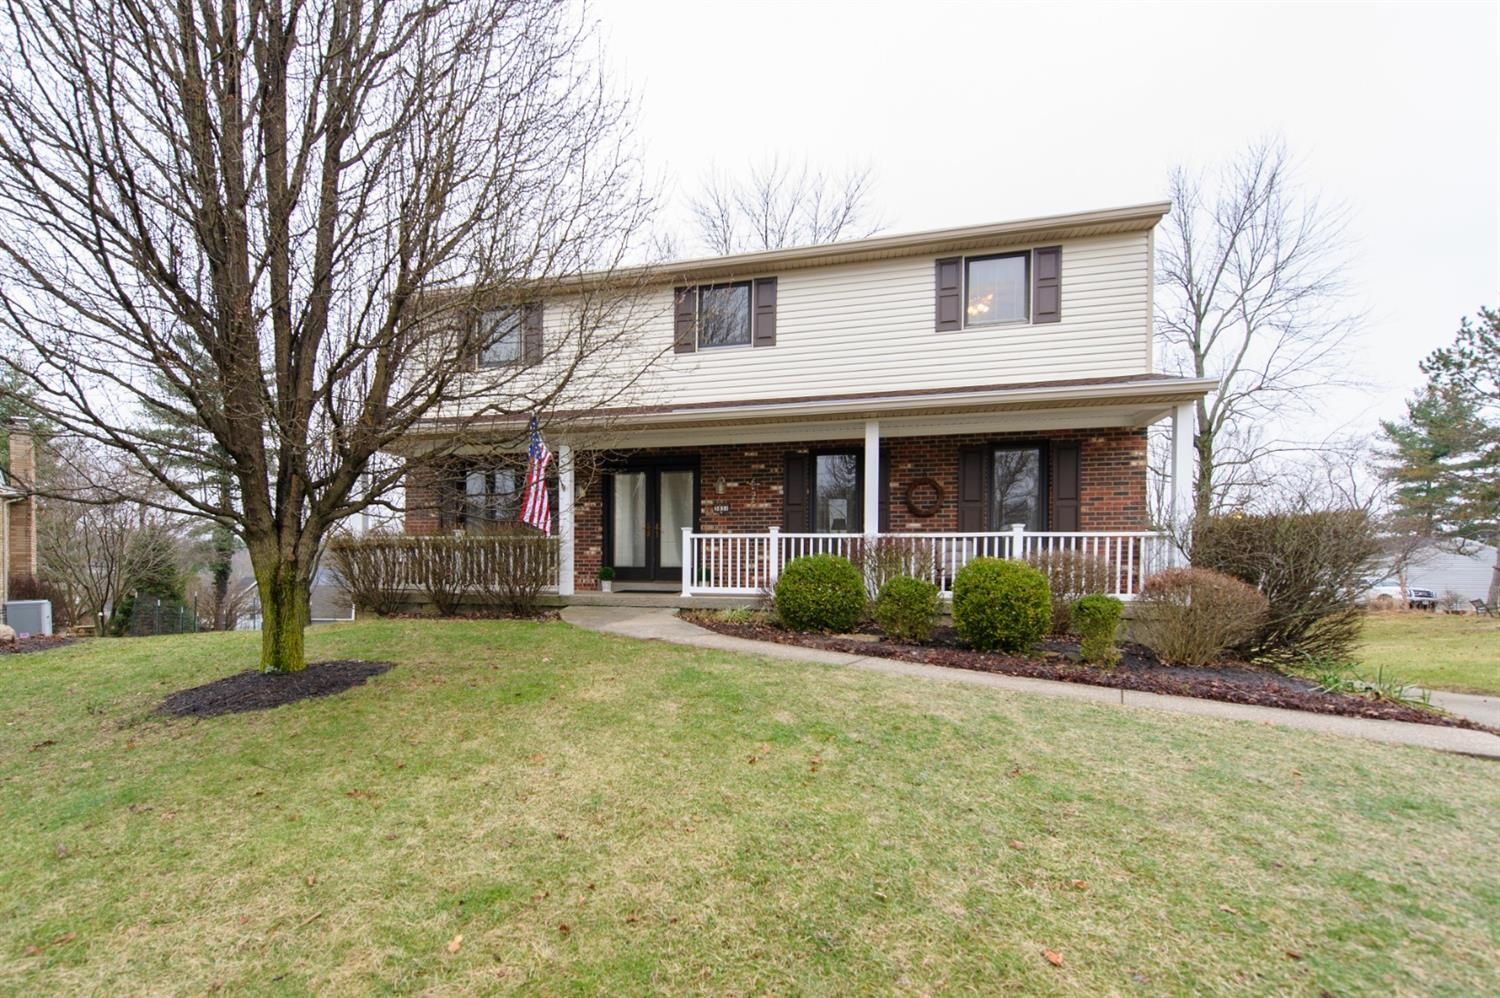 Photo 1 for 3831 Appletree Ct White Oak, OH 45247